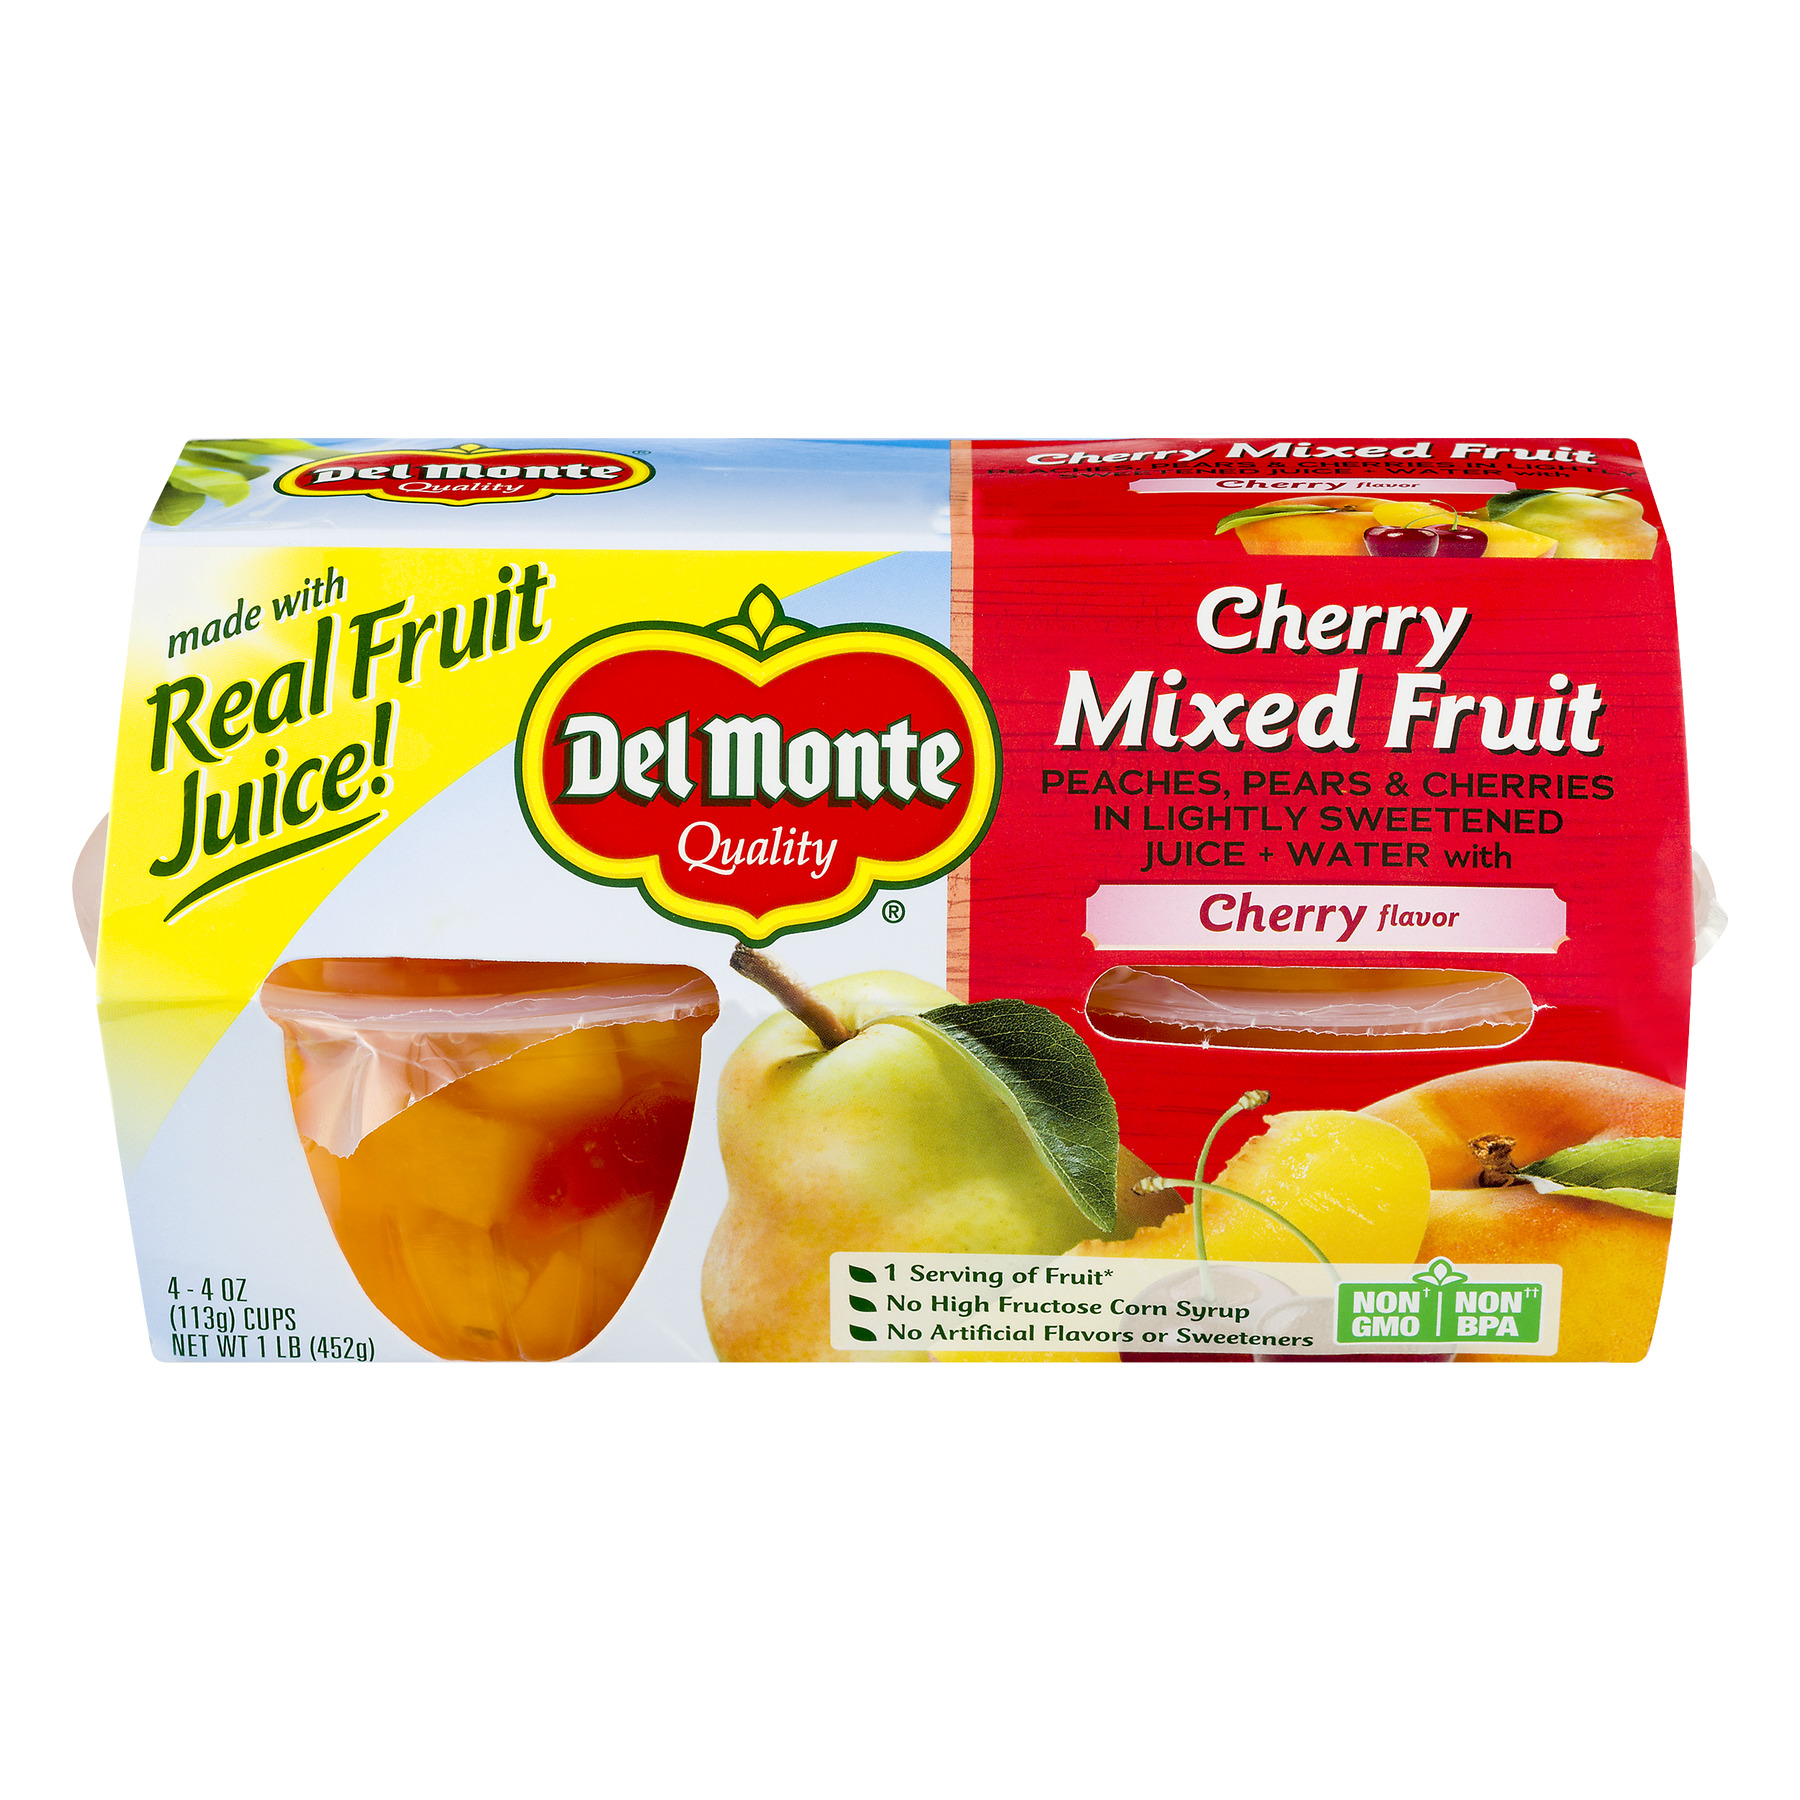 Del Monte Cherry Mixed Fruit in Lightly Sweetened Juice + Water, 4 oz Cup, 4 Count Box